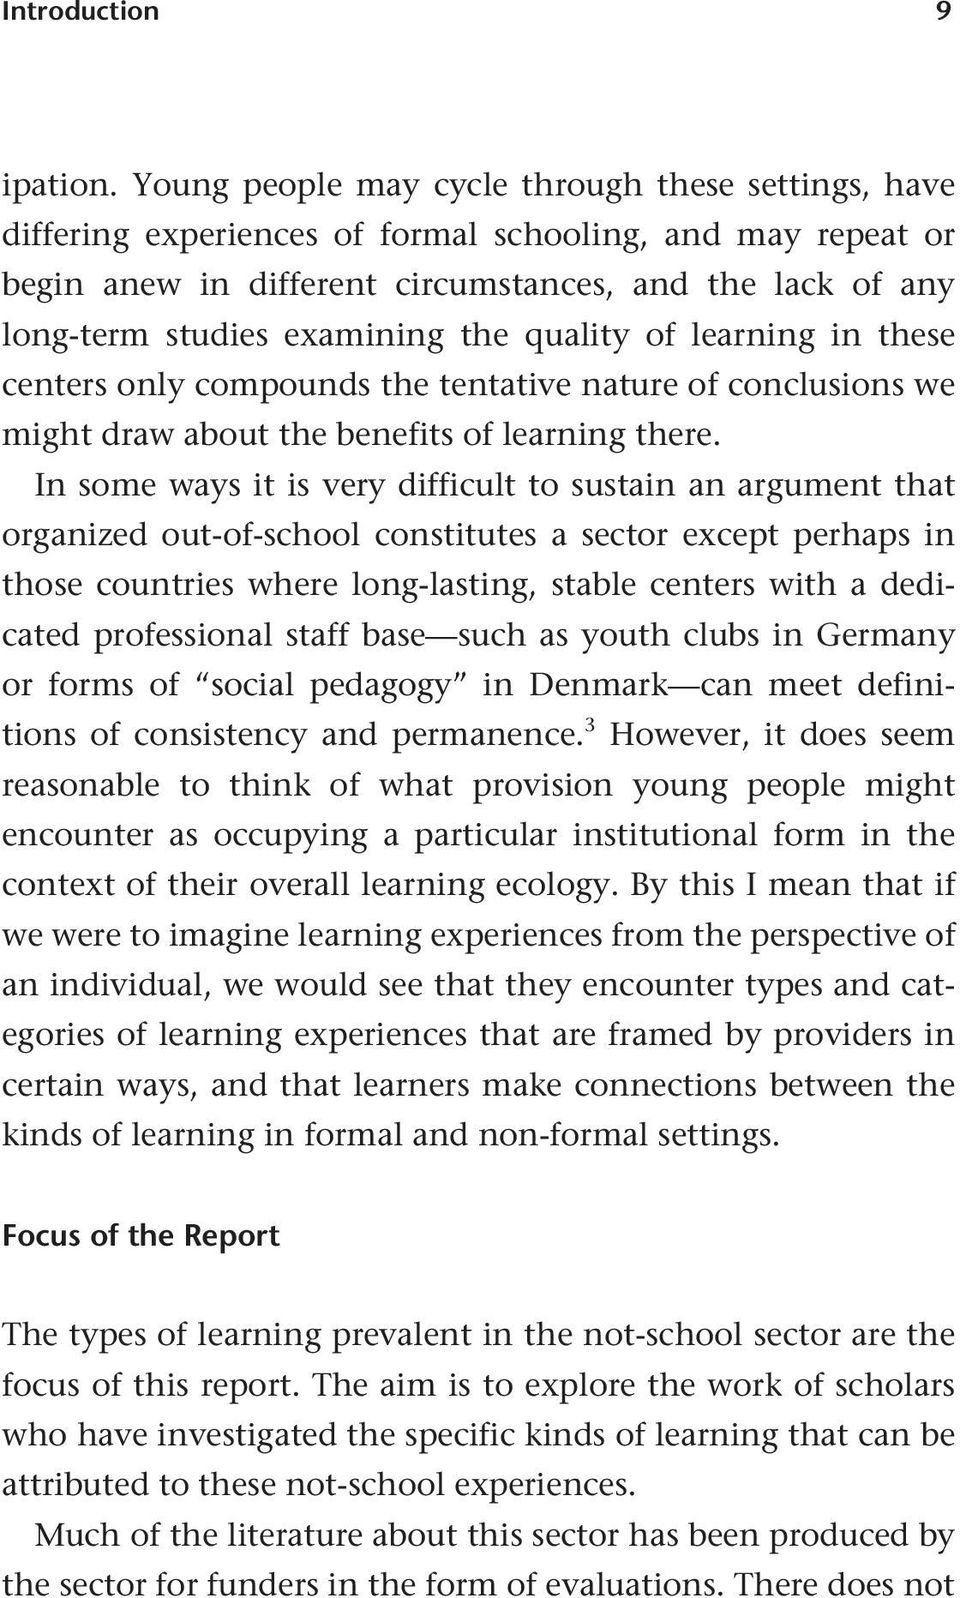 the quality of learning in these centers only compounds the tentative nature of conclusions we might draw about the benefits of learning there.